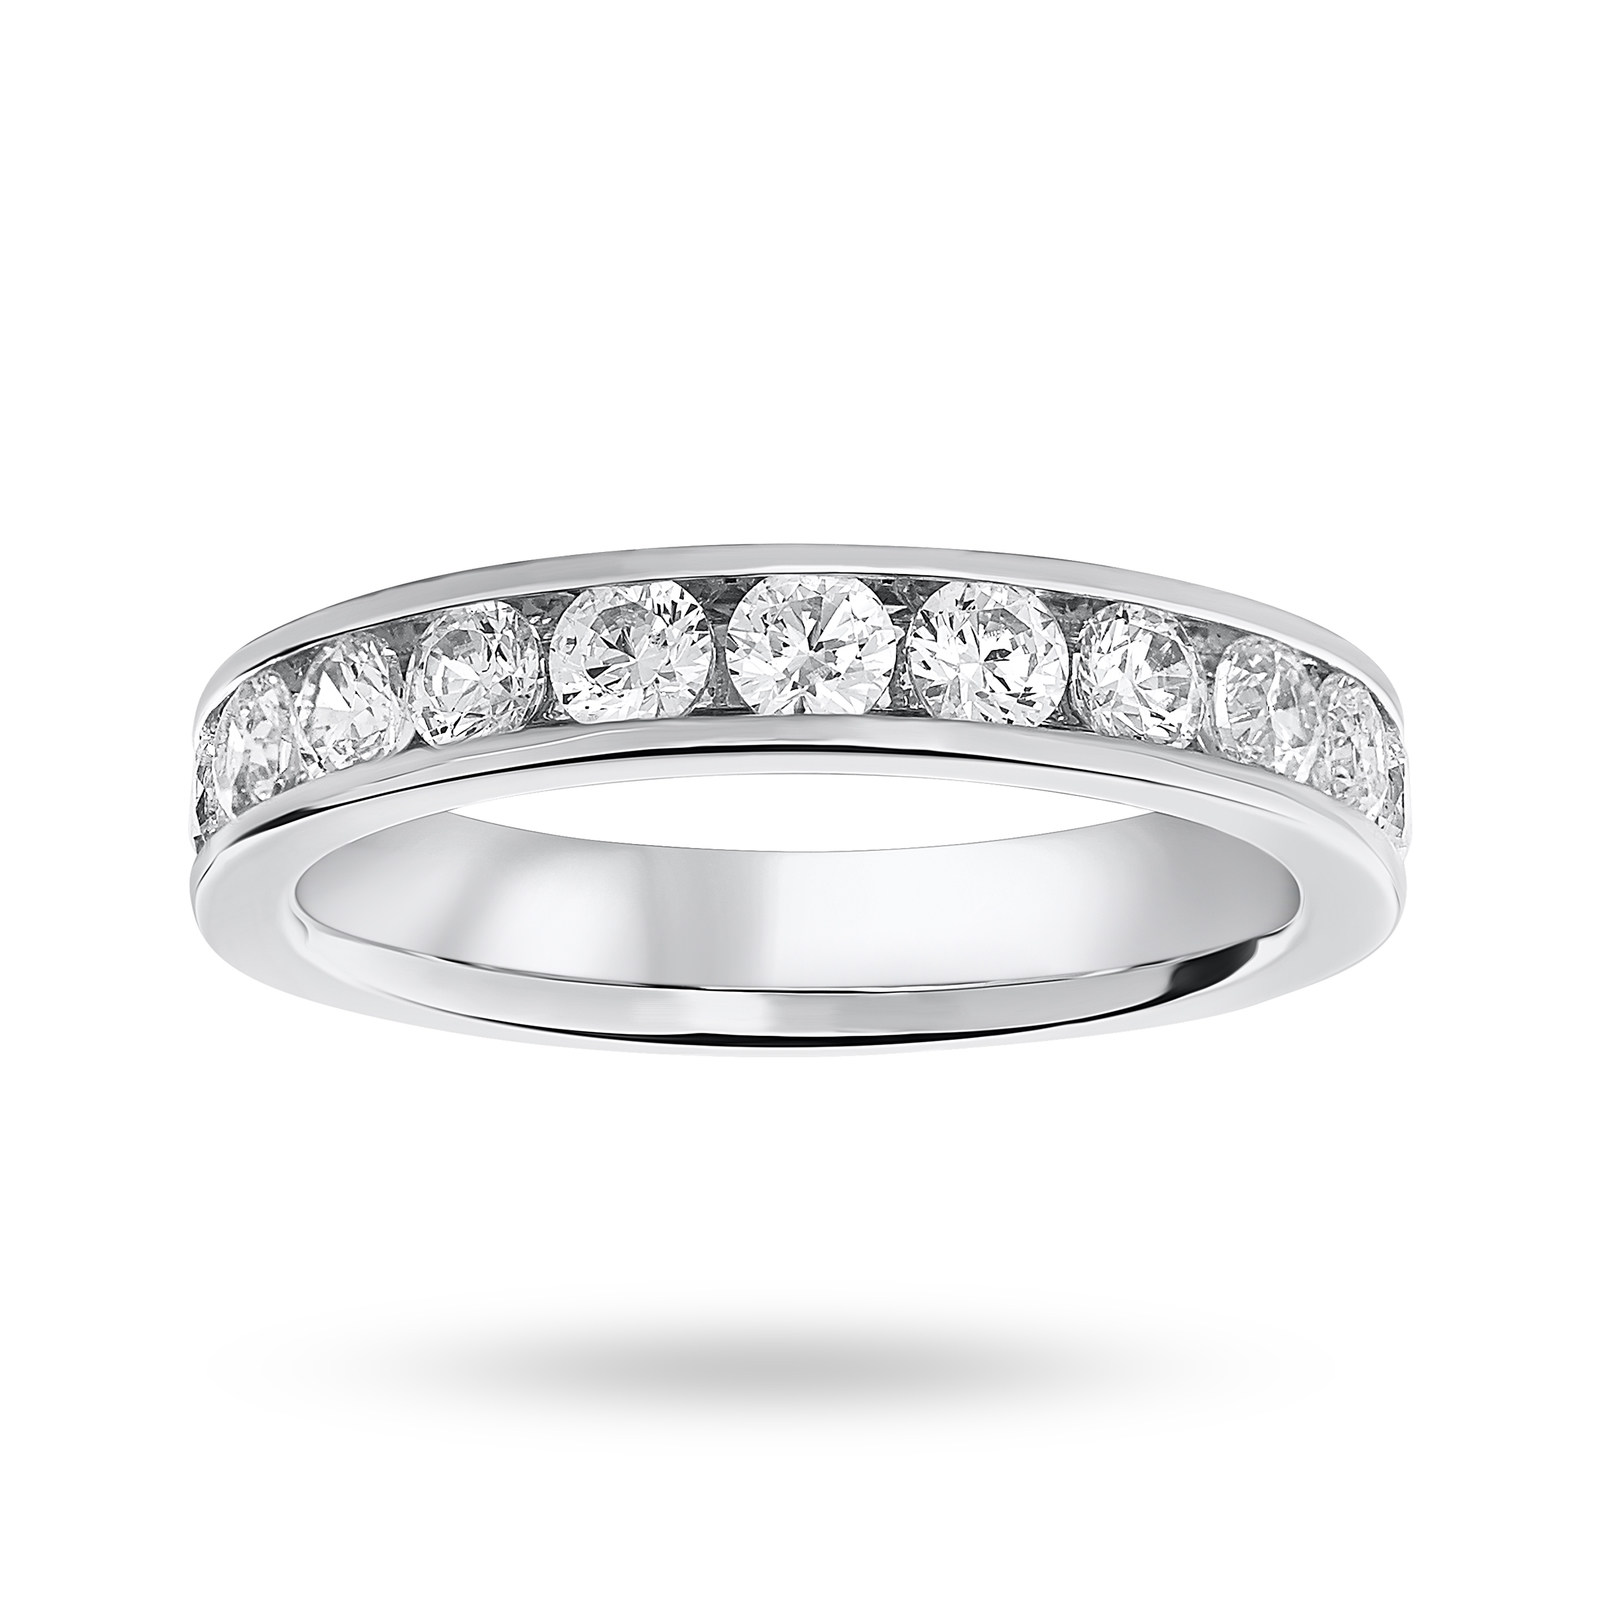 18 Carat White Gold 1.00 Carat Brilliant Cut Half Eternity Ring